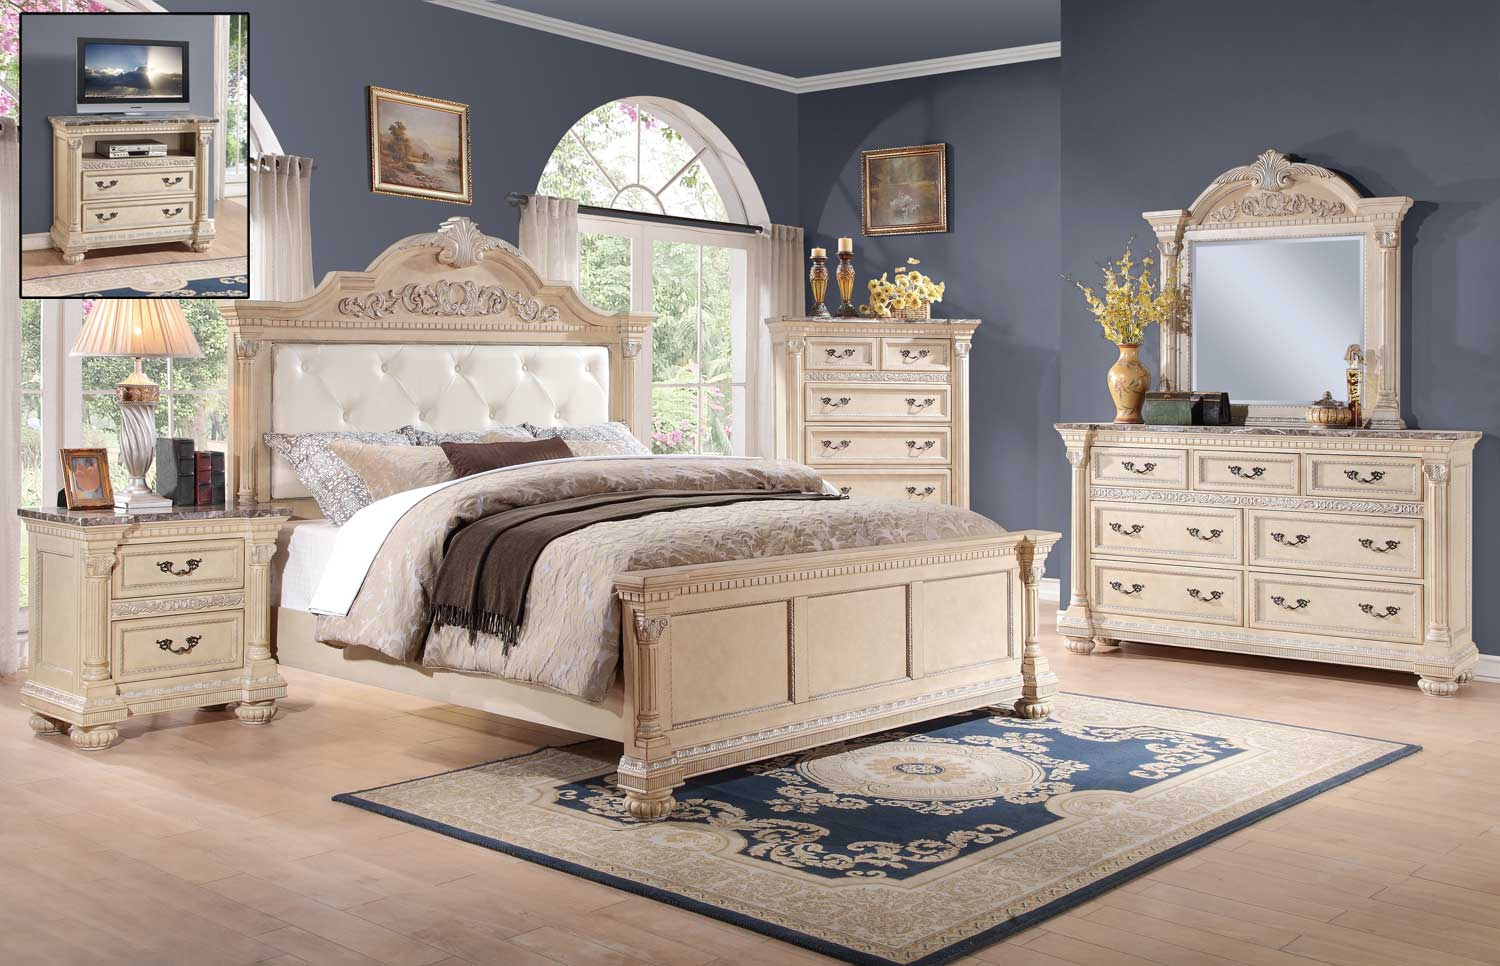 Homelegance Russian Hill Bedroom Set - Antique White